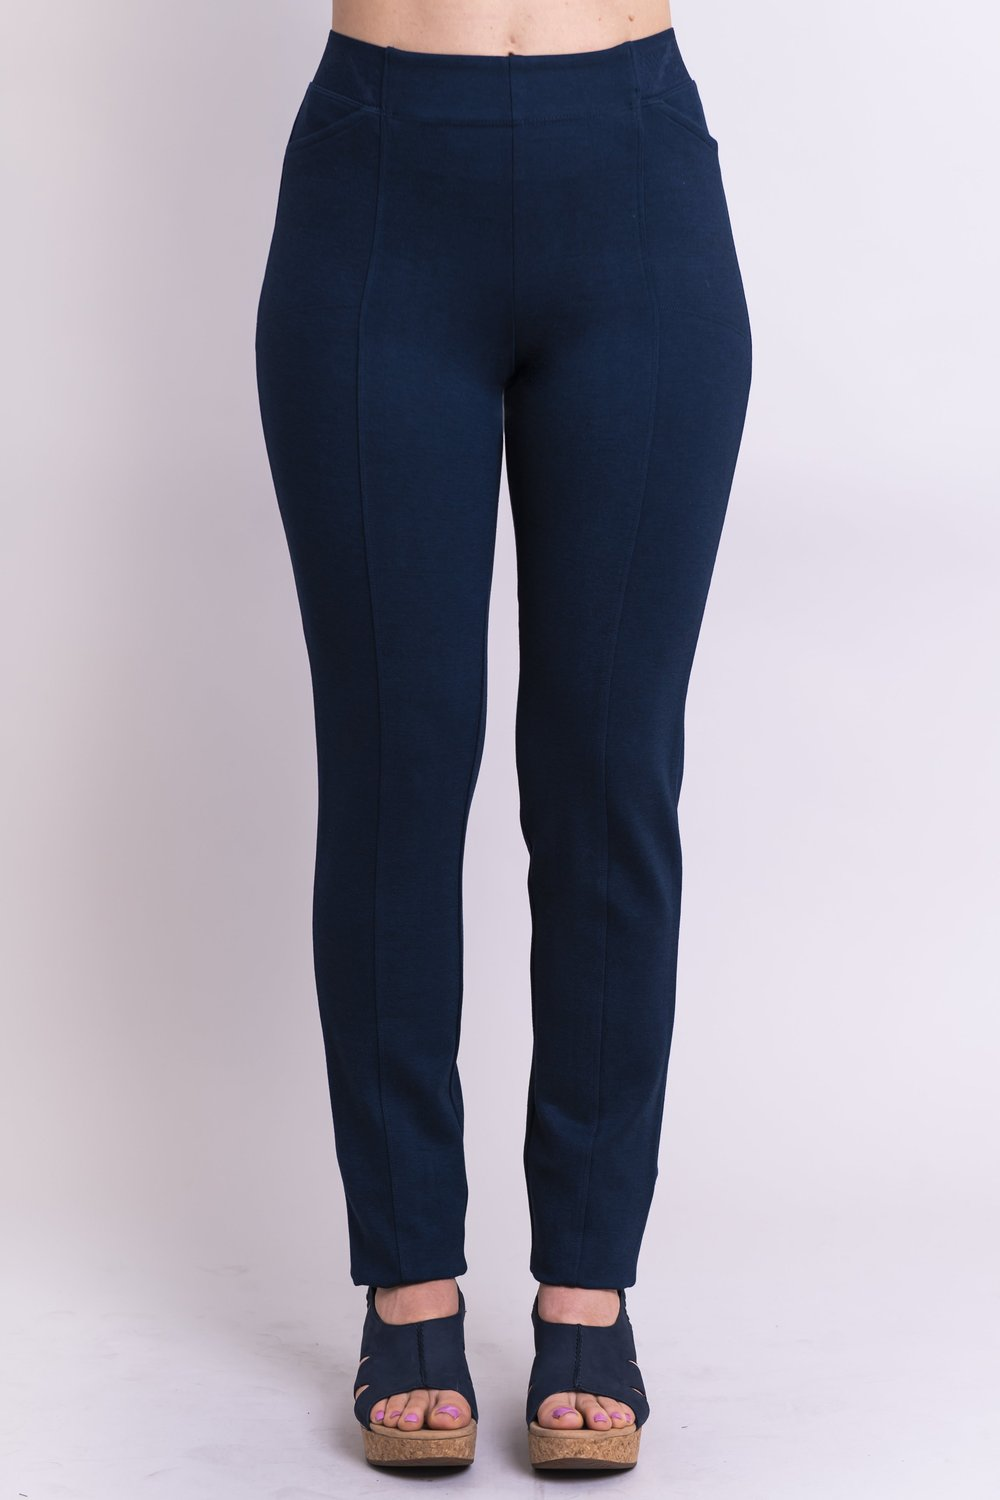 Women's petite indigo tailored pant, with slim and narrow leg. Made of sustainable and natural bamboo fibers, fair-trade.